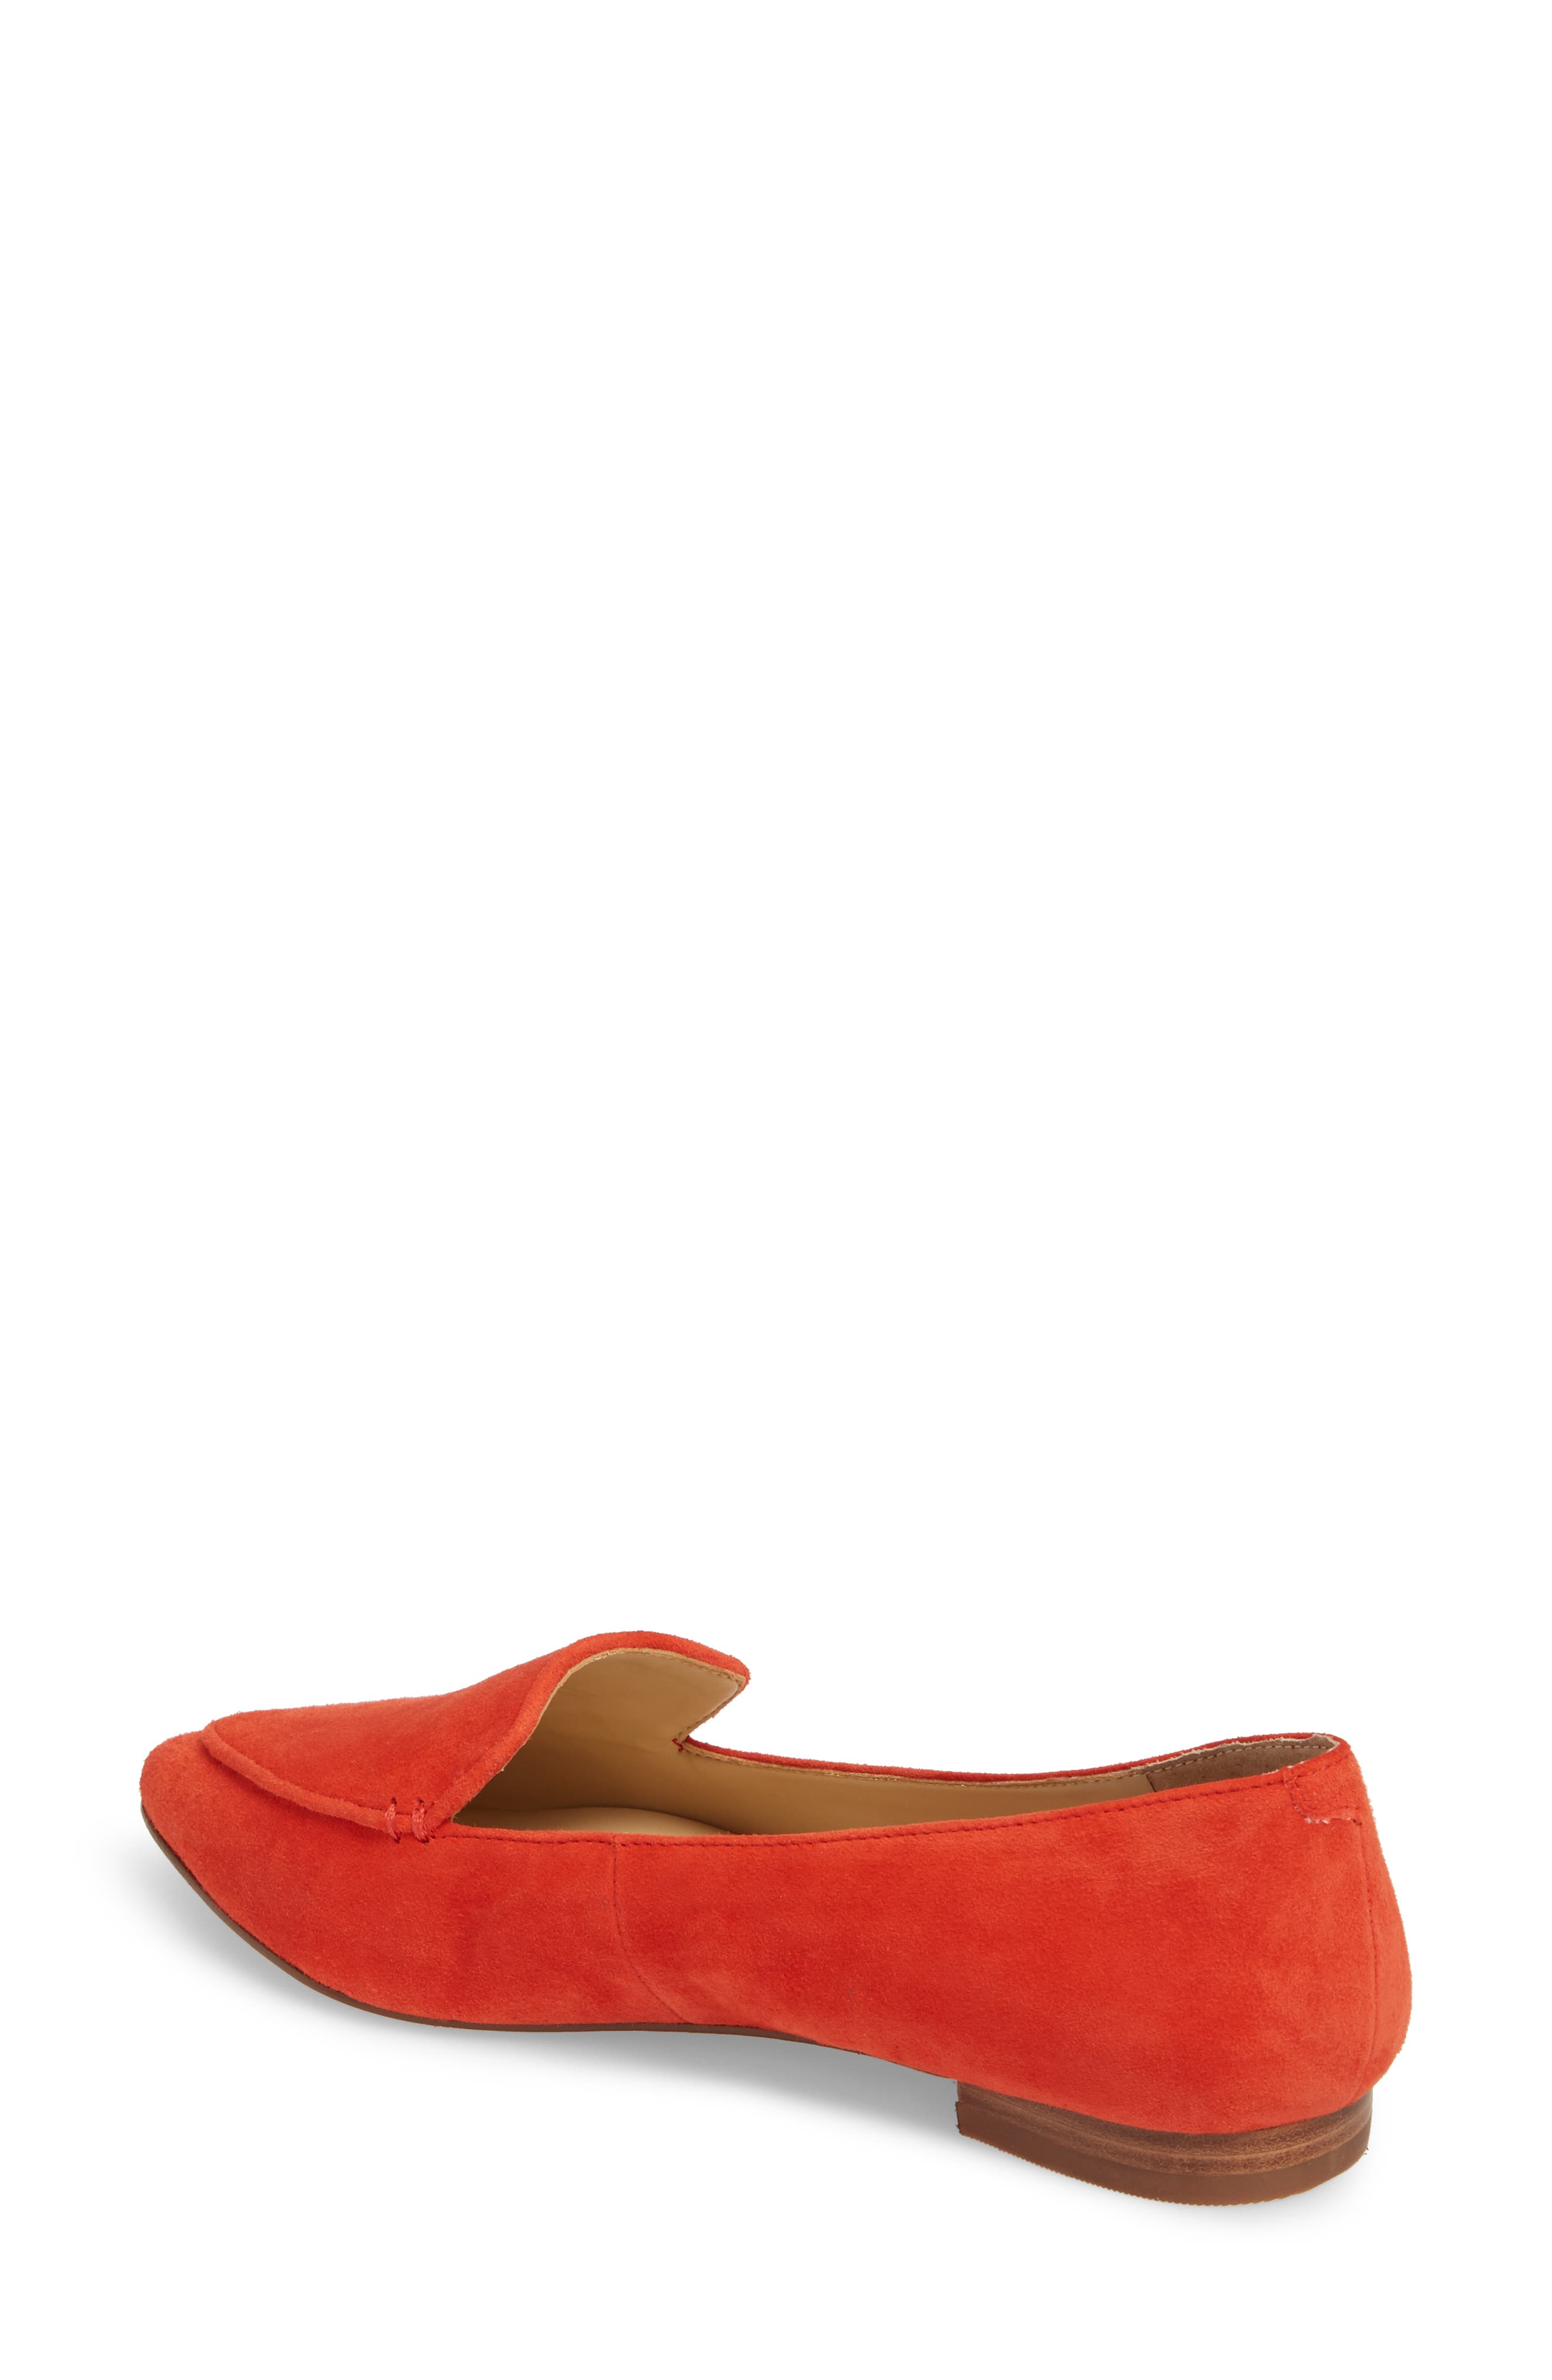 'Cammila' Pointy Toe Loafer,                             Alternate thumbnail 15, color,